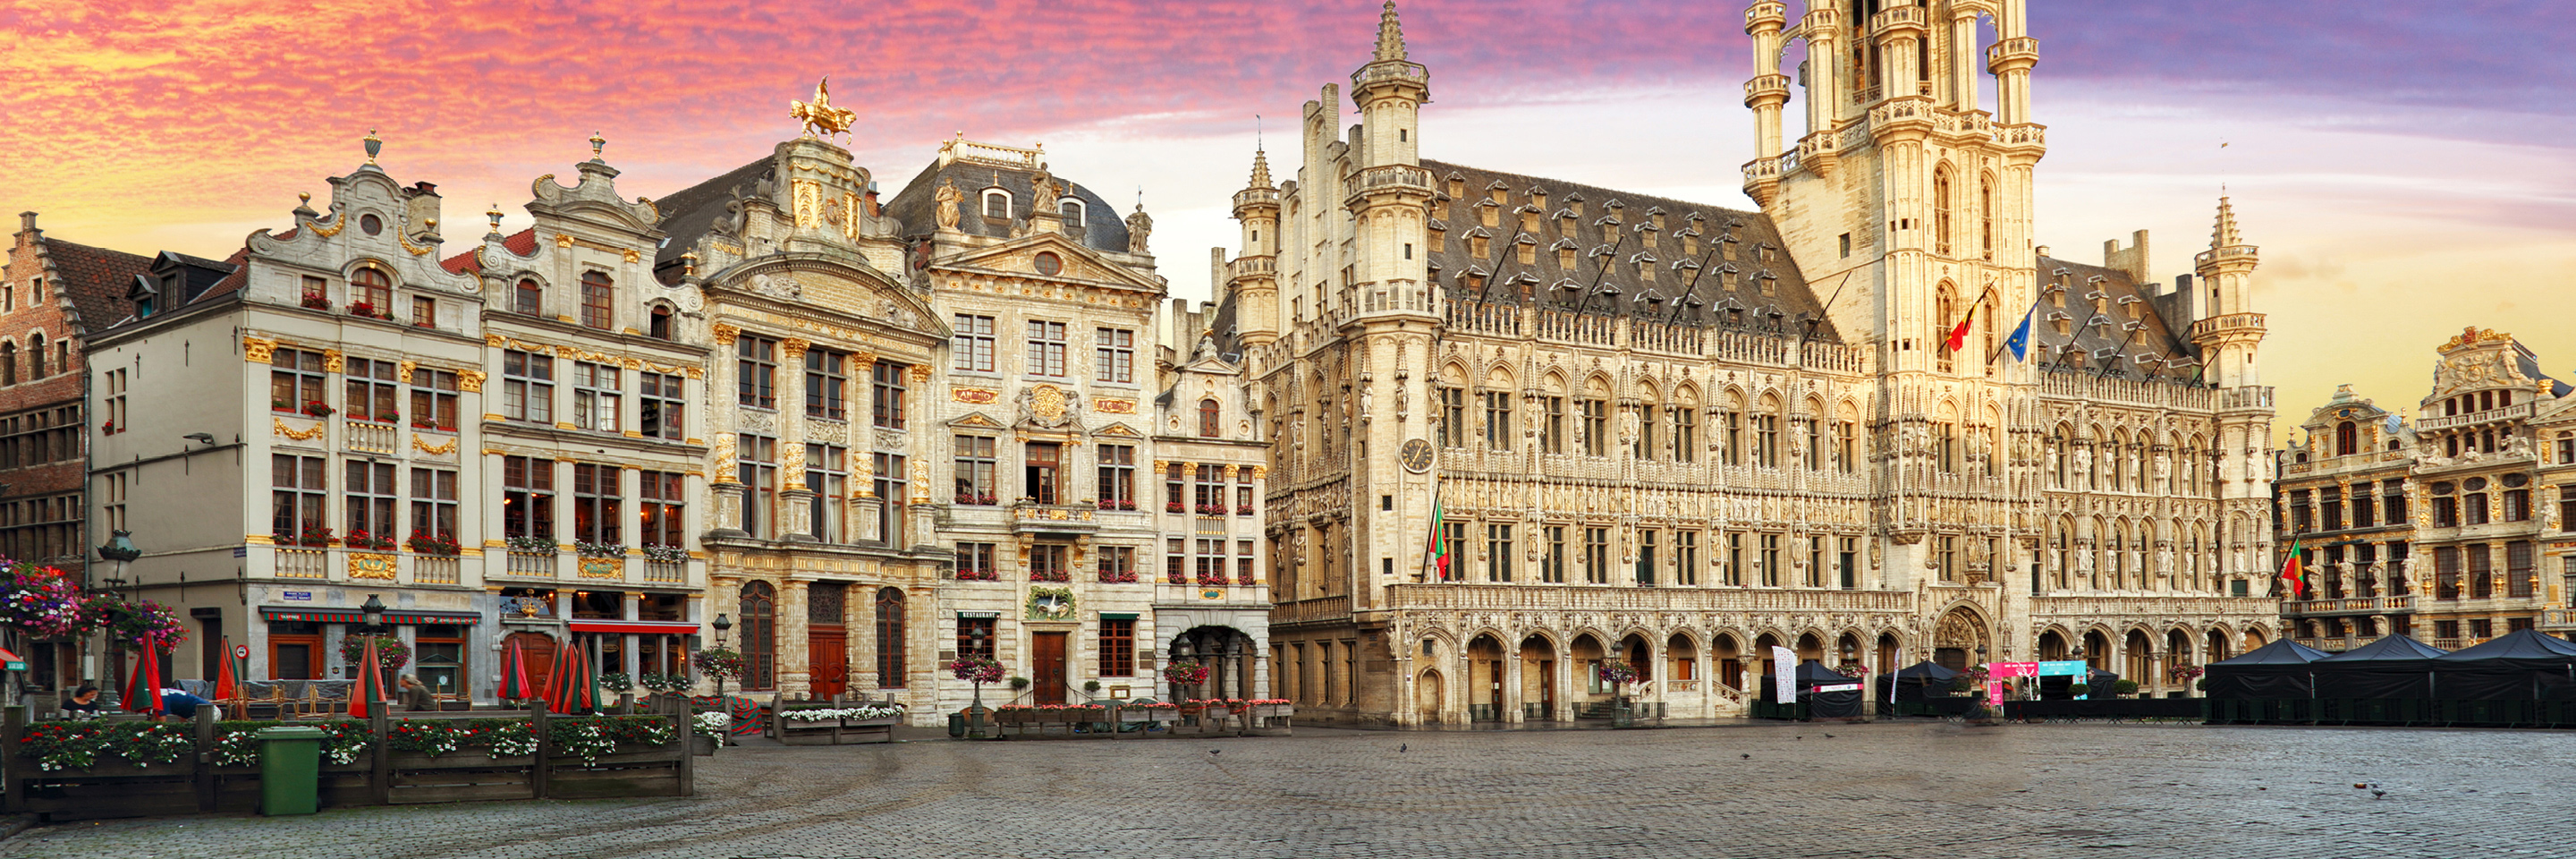 Tulip Time Highlights with 1 Night in Brussels